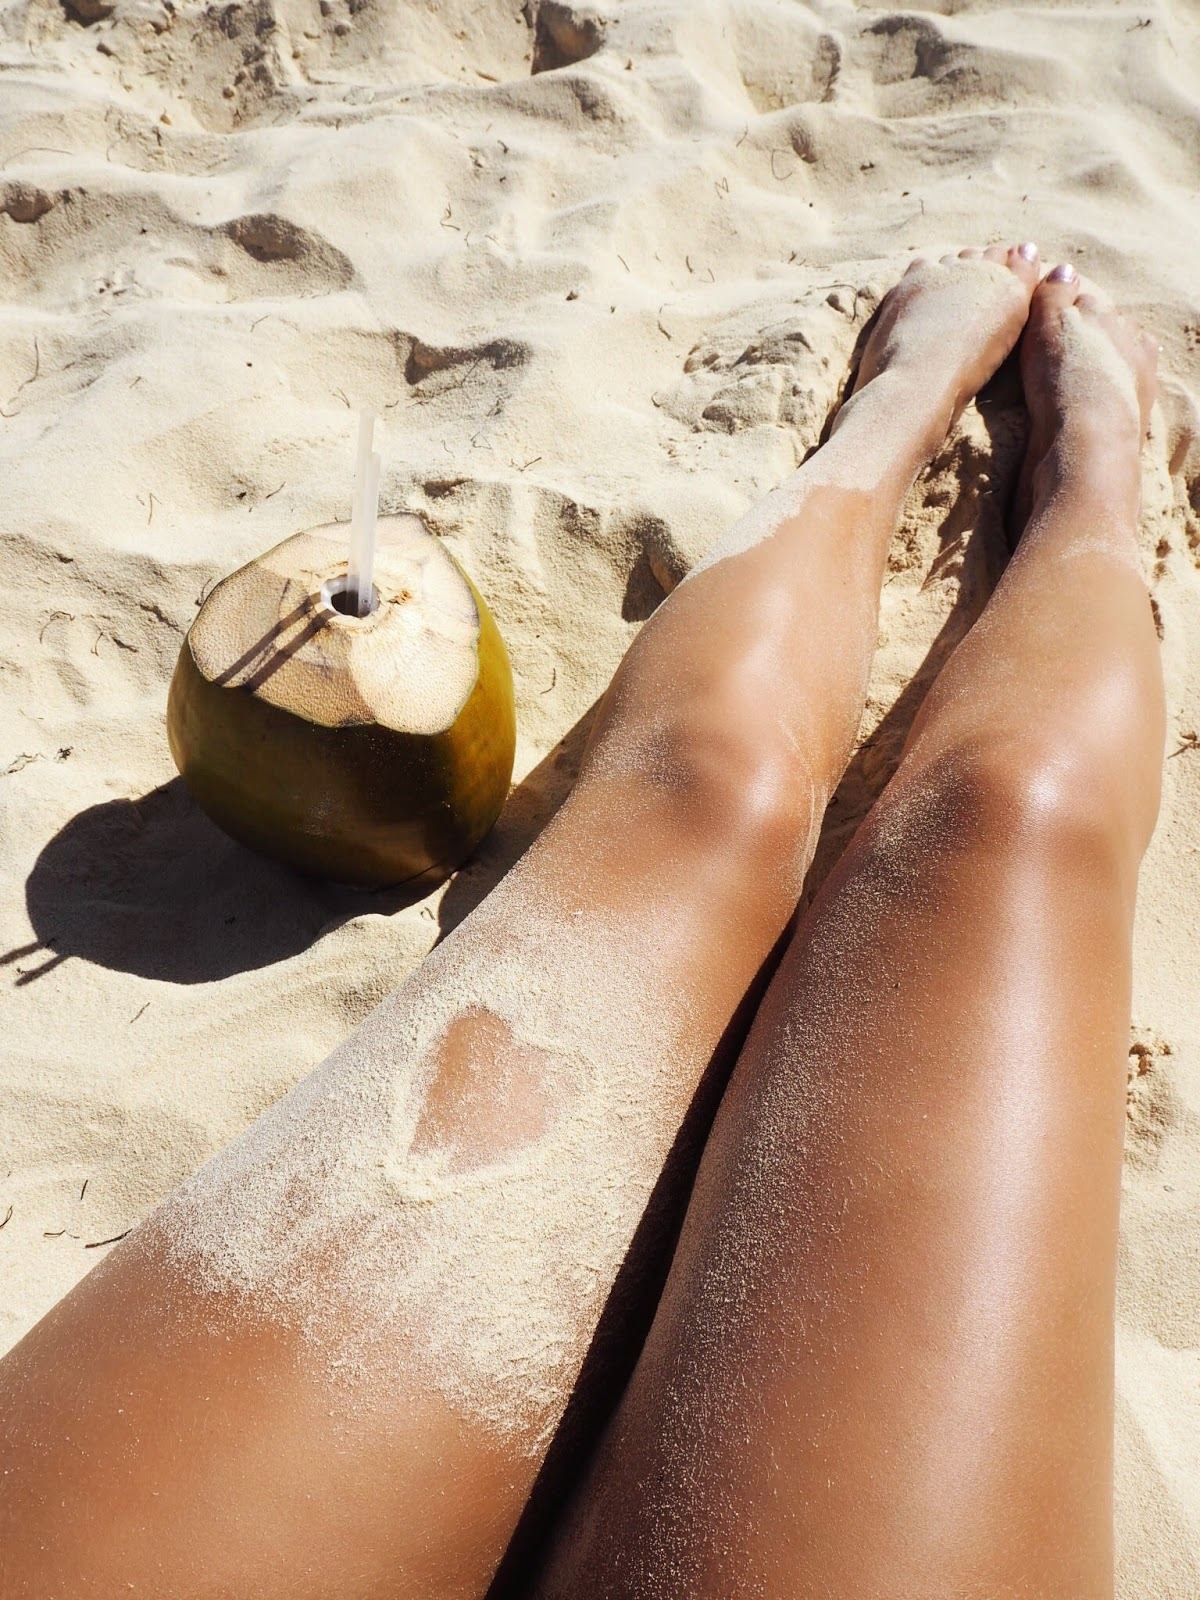 Tanned Sandy Legs with Natural Fresh Coconut Water